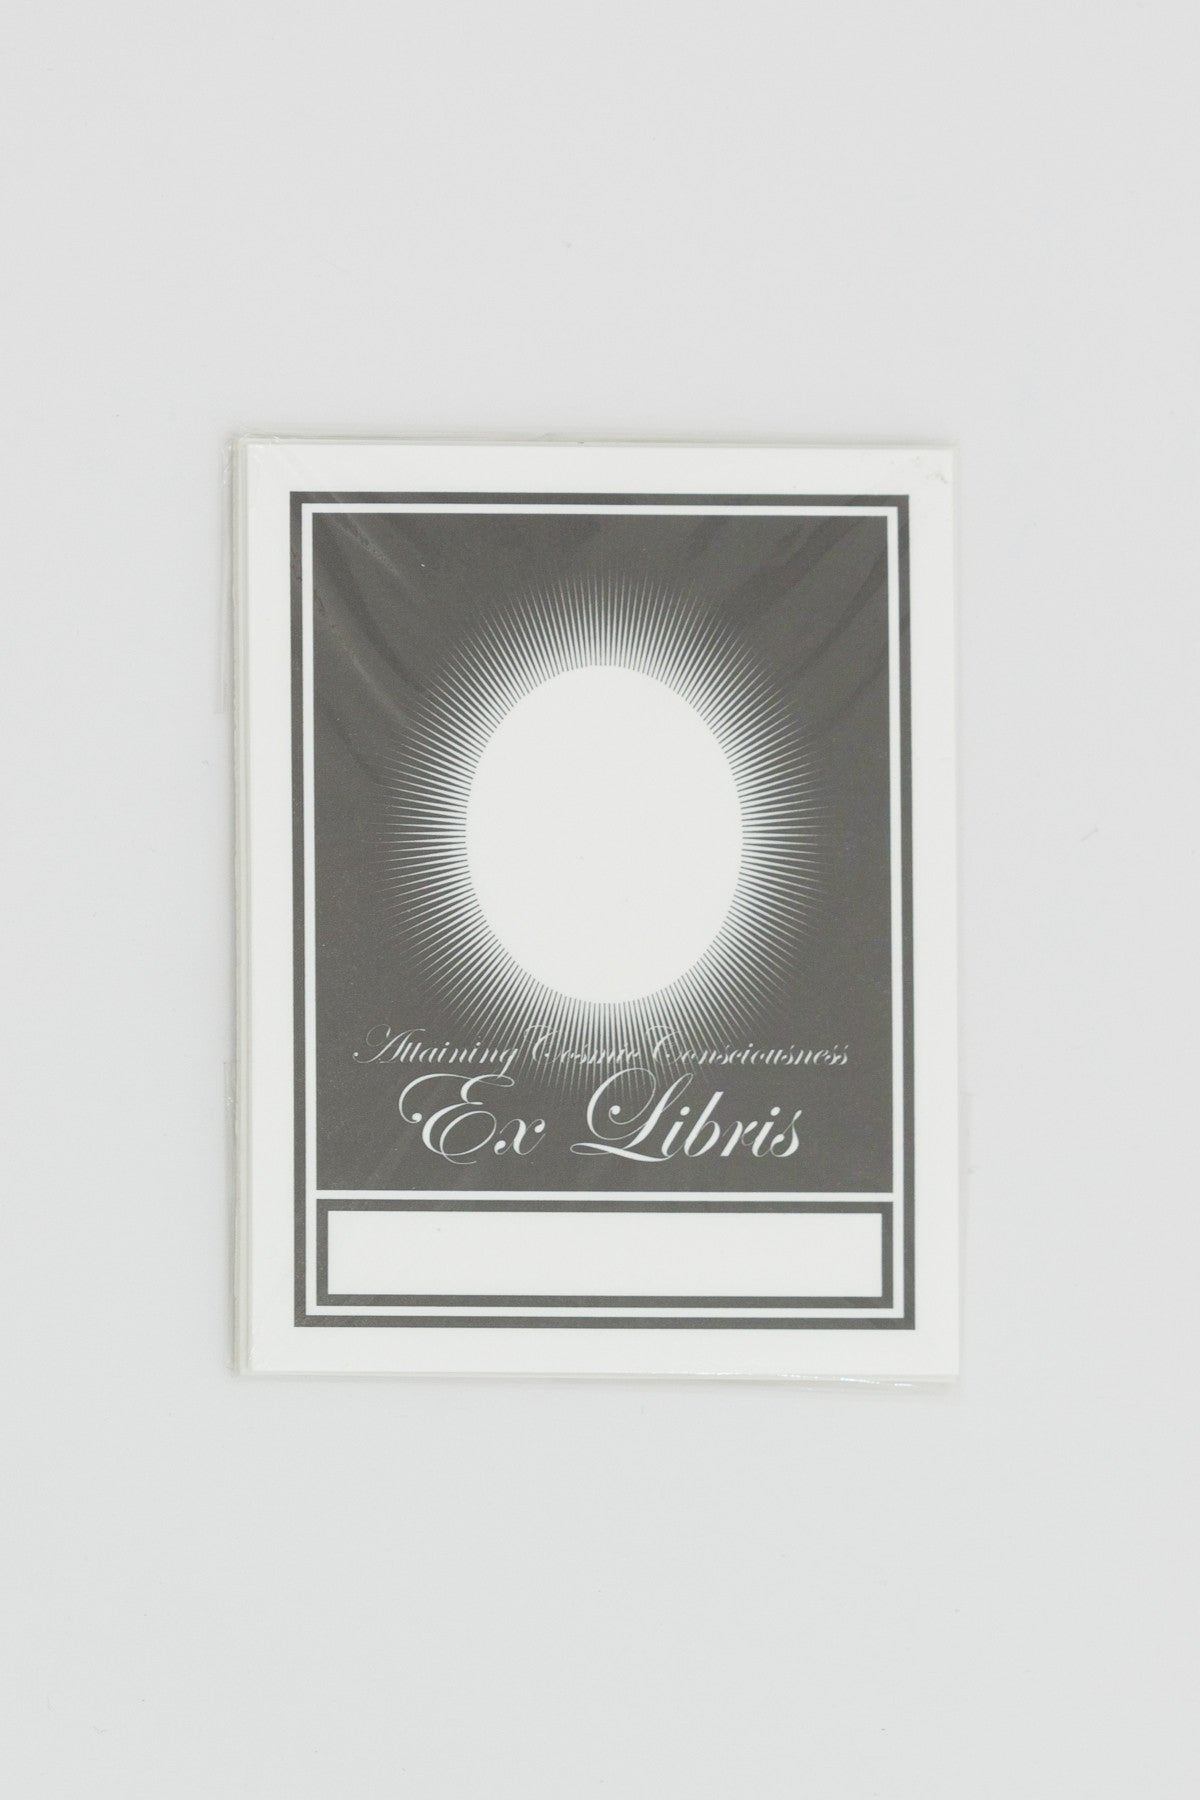 'Attaining Cosmic Consciousness' Letterpress Bookplate by Ian Whittlesea